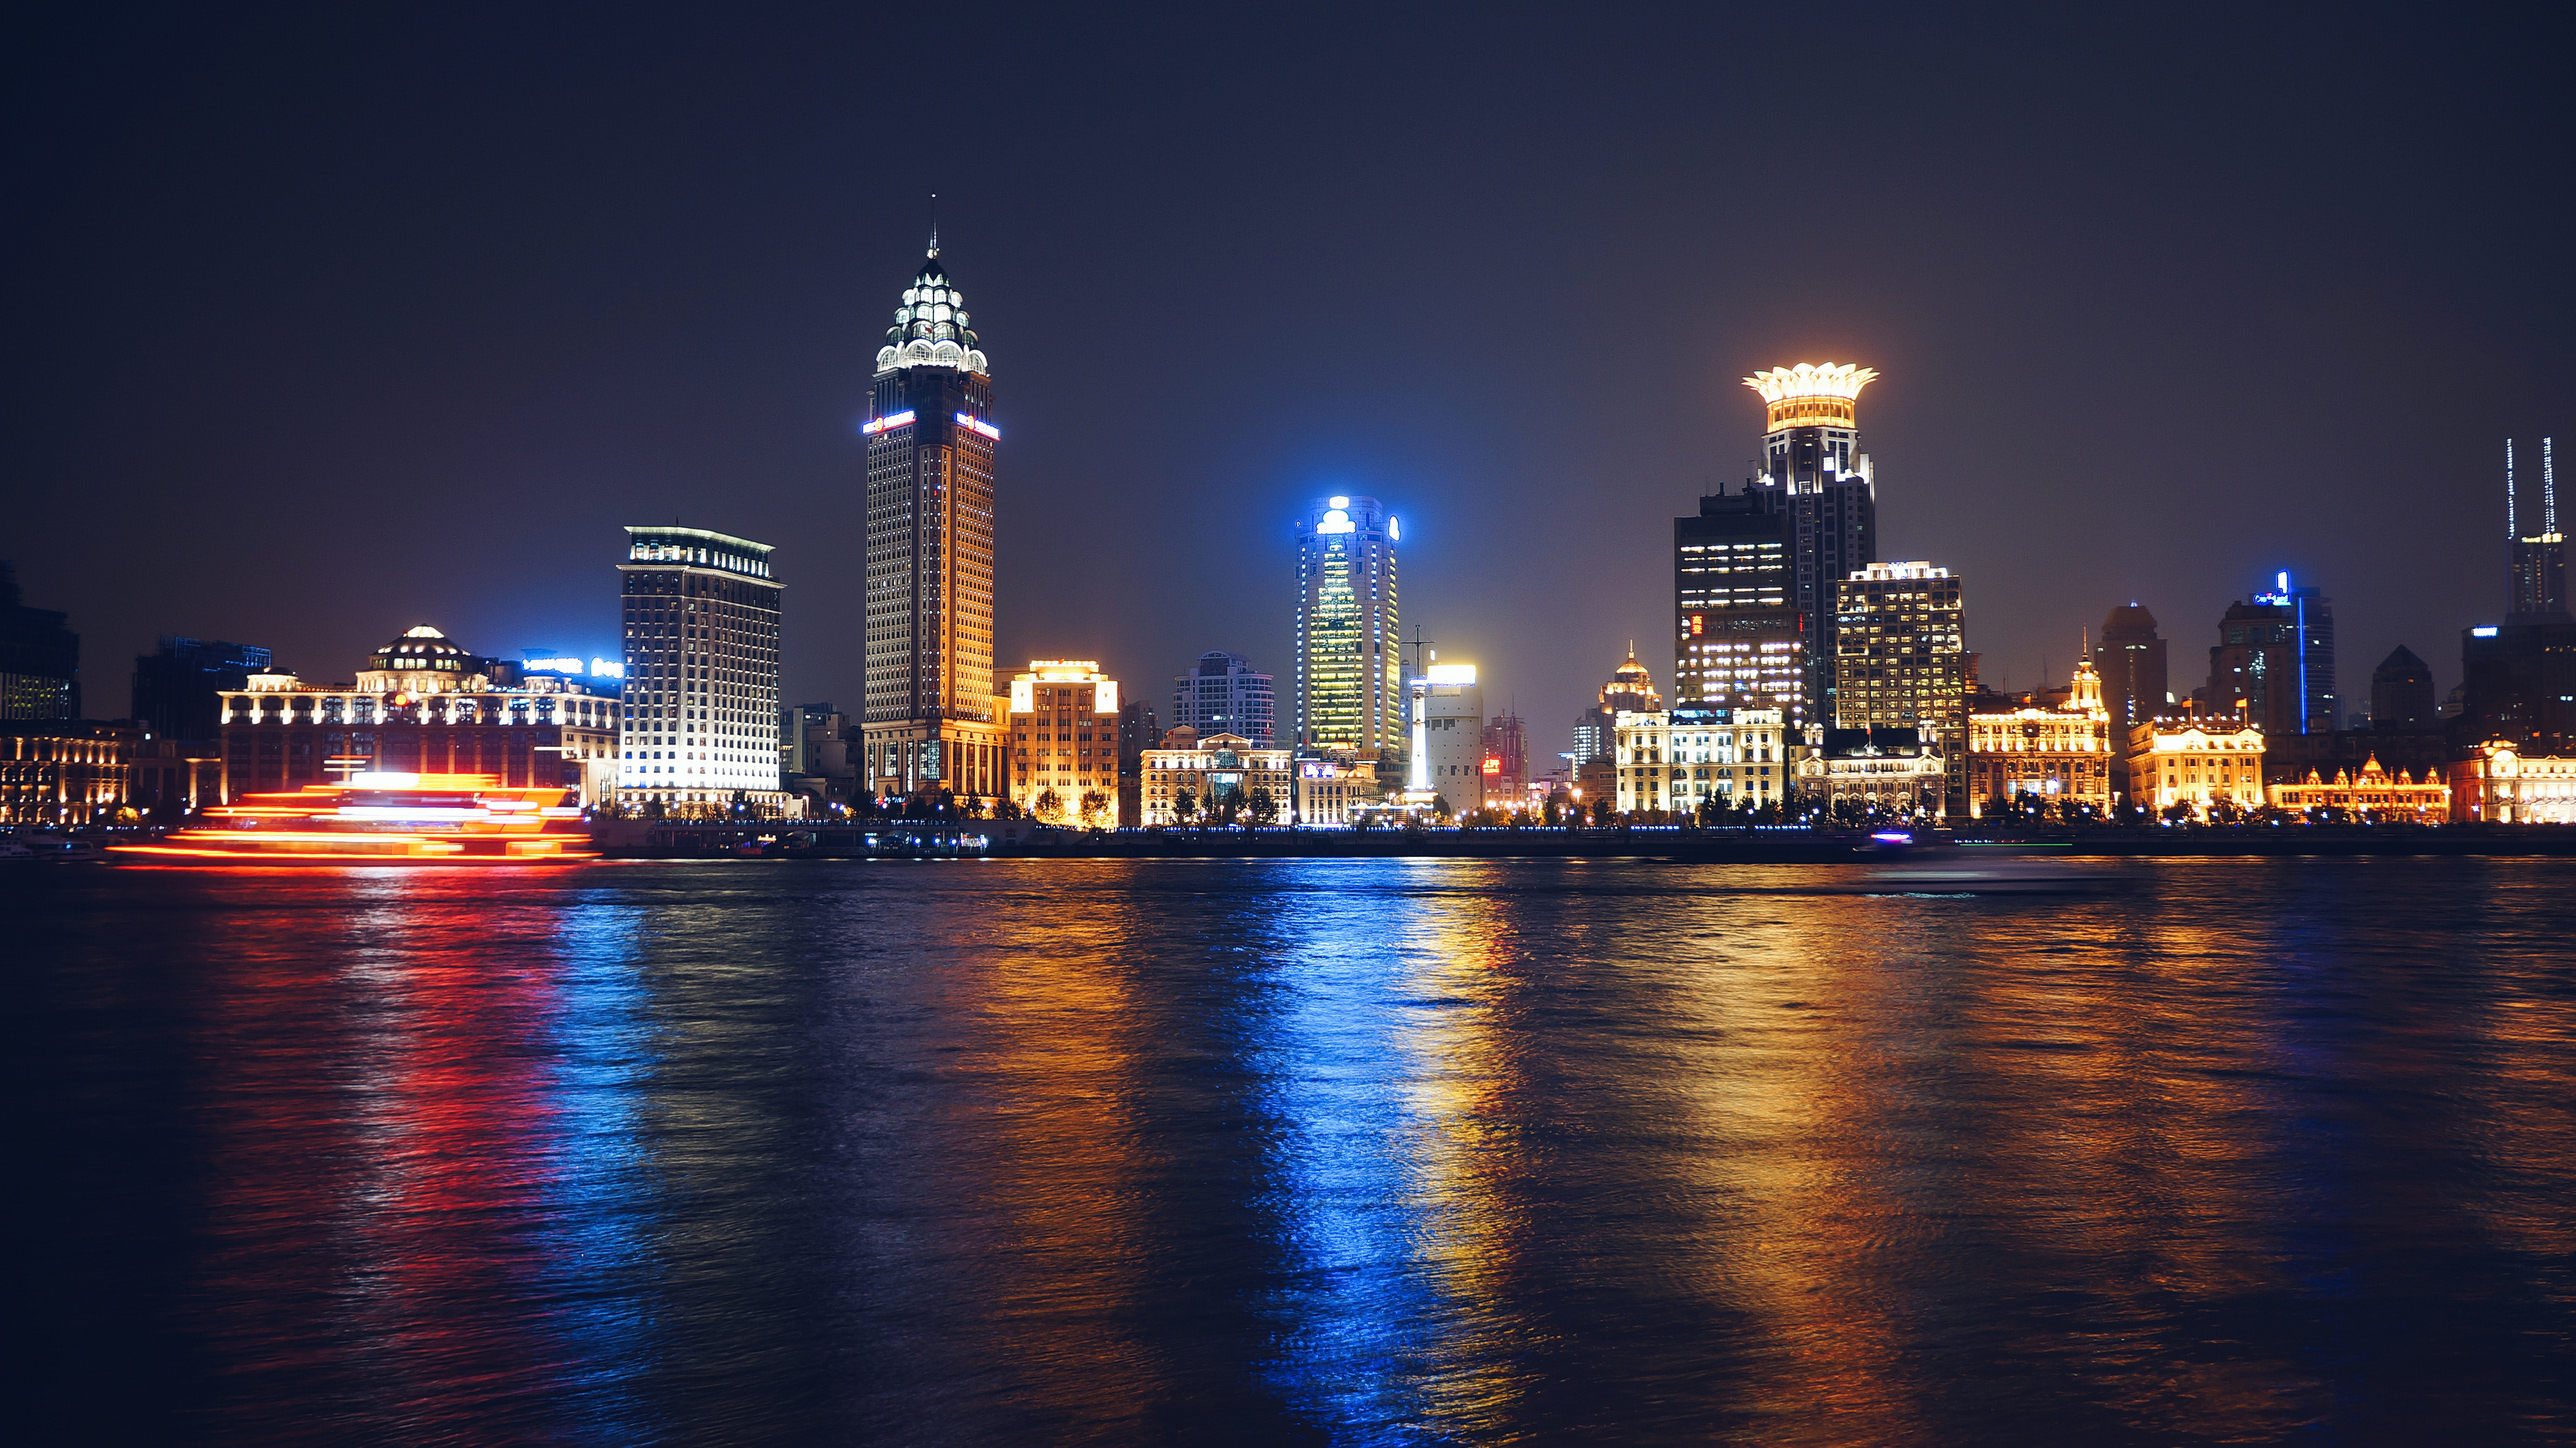 Colorful Coastal Cityscape at Night, Skyline, Reflection, Public domain, Outdoor, HQ Photo